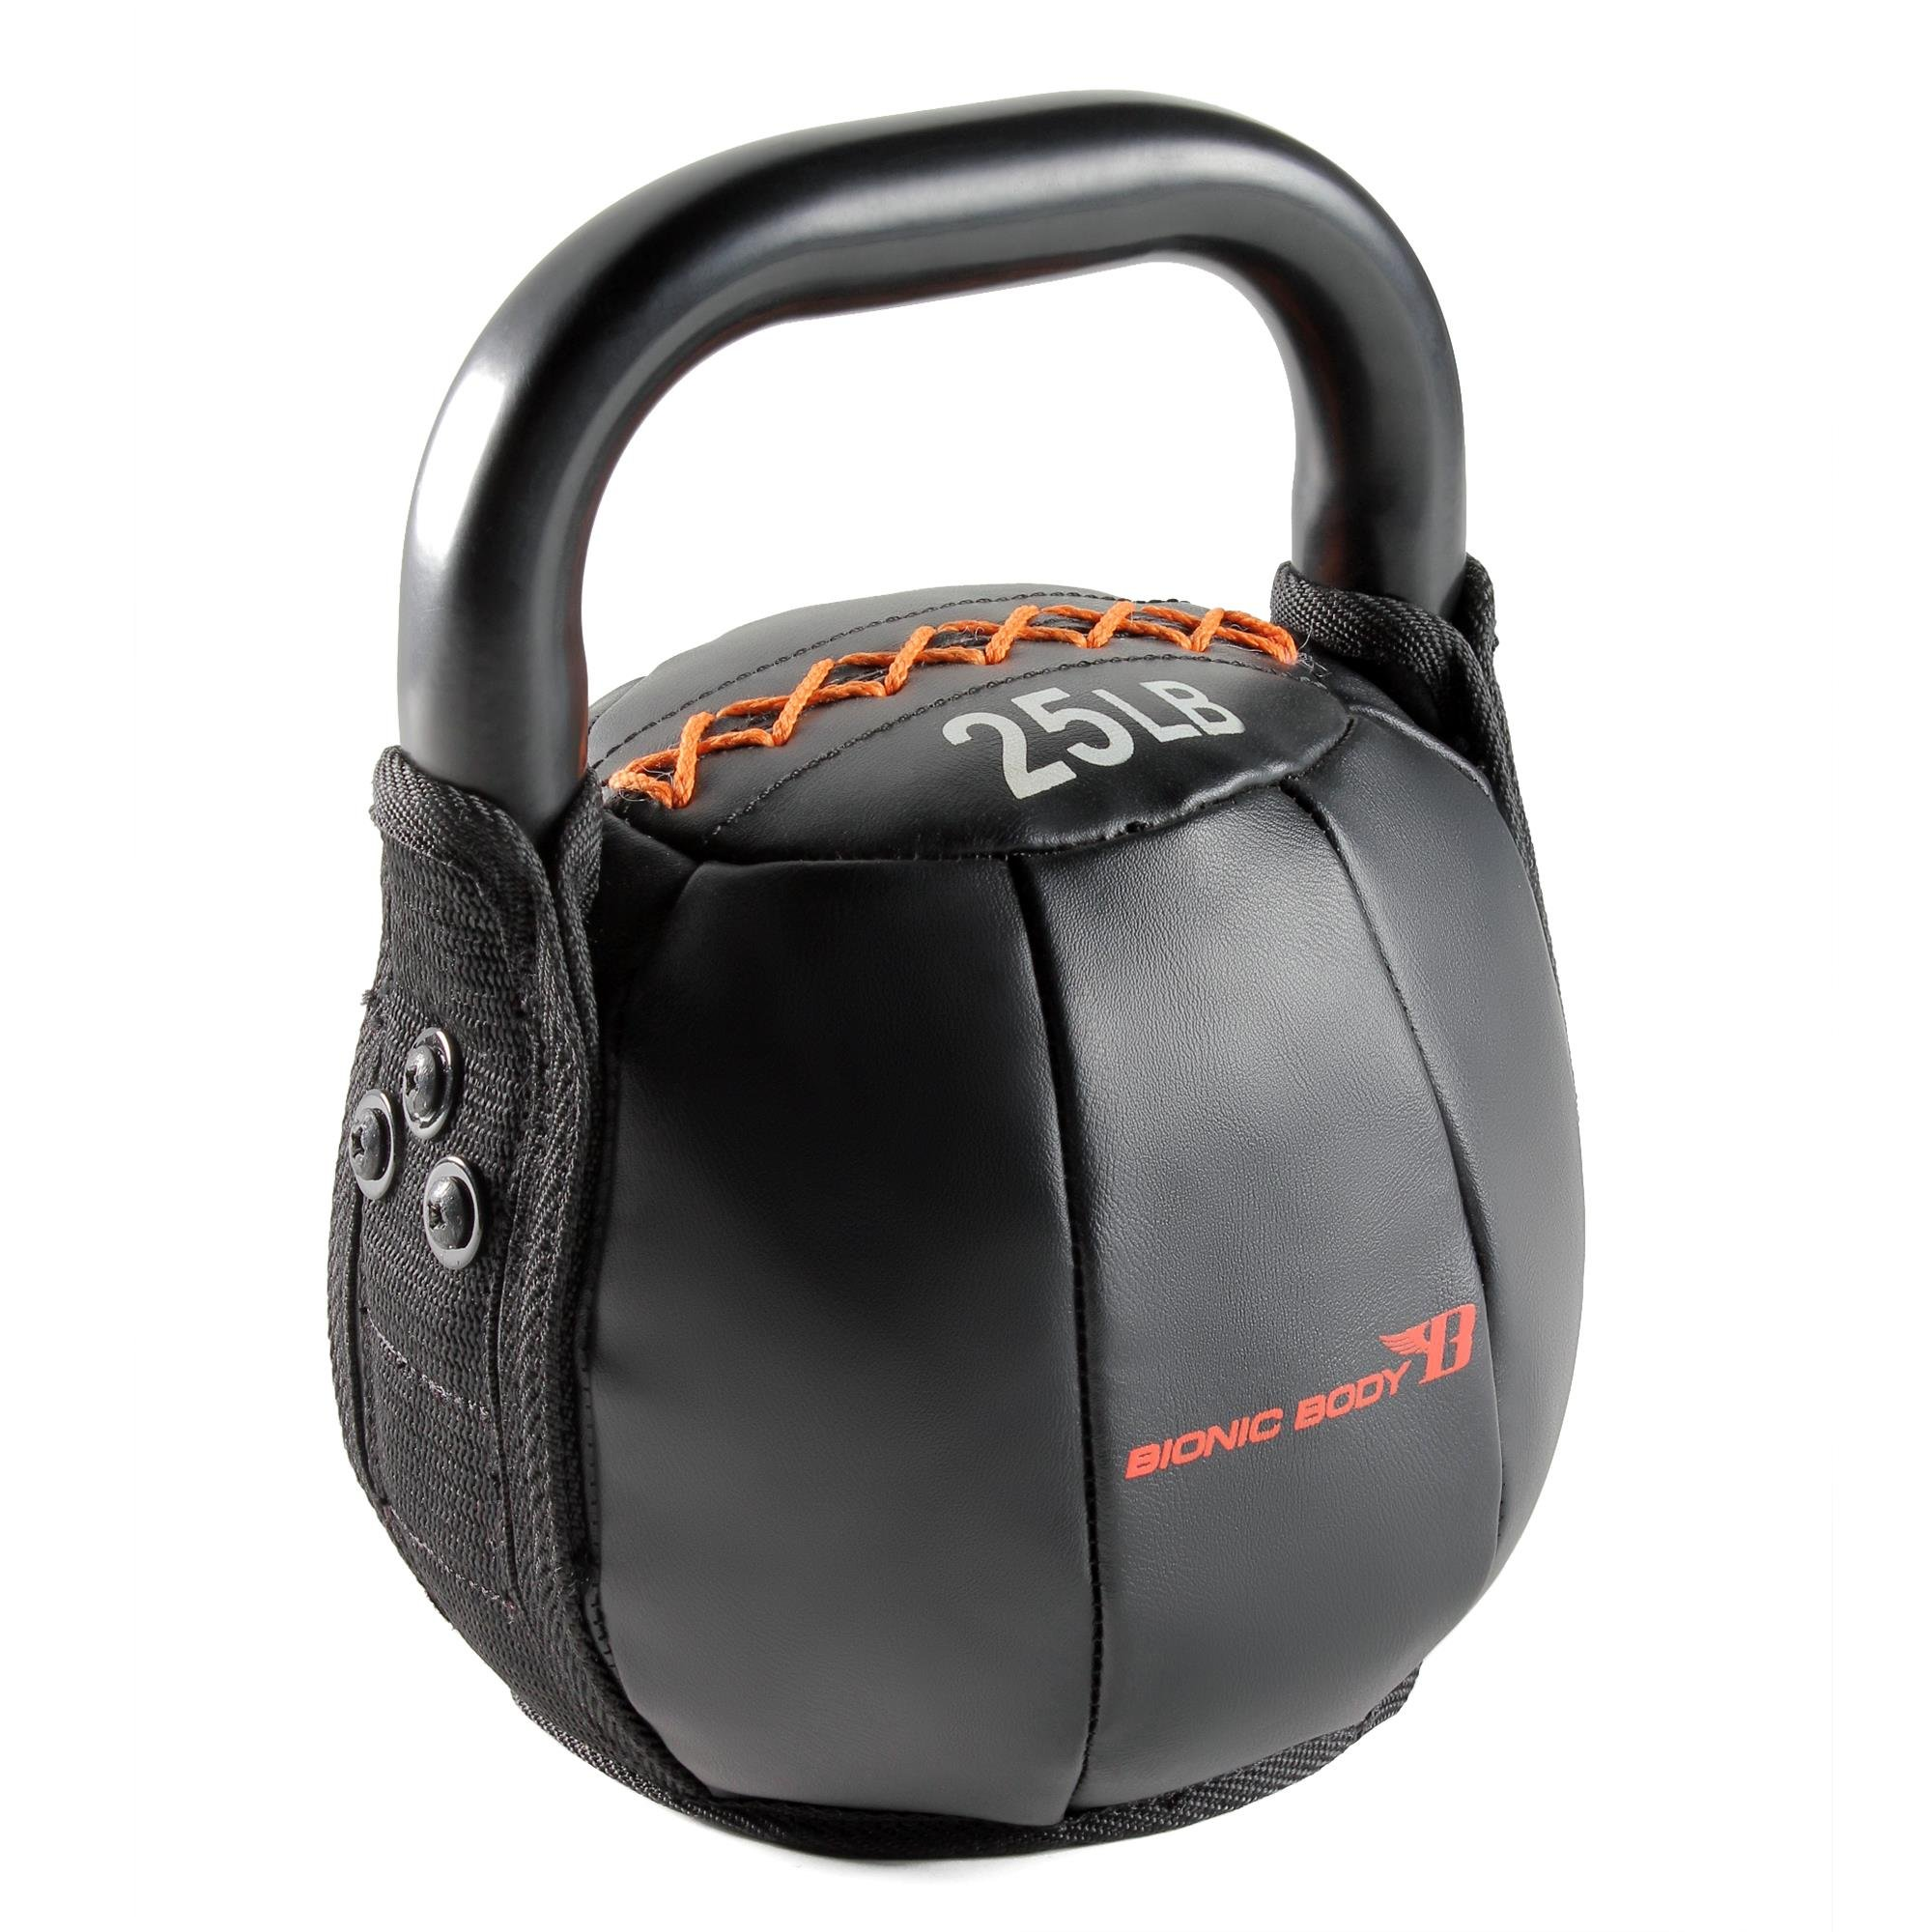 Bionic Body Soft Kettle Bell with Handle, 25 lb, Black